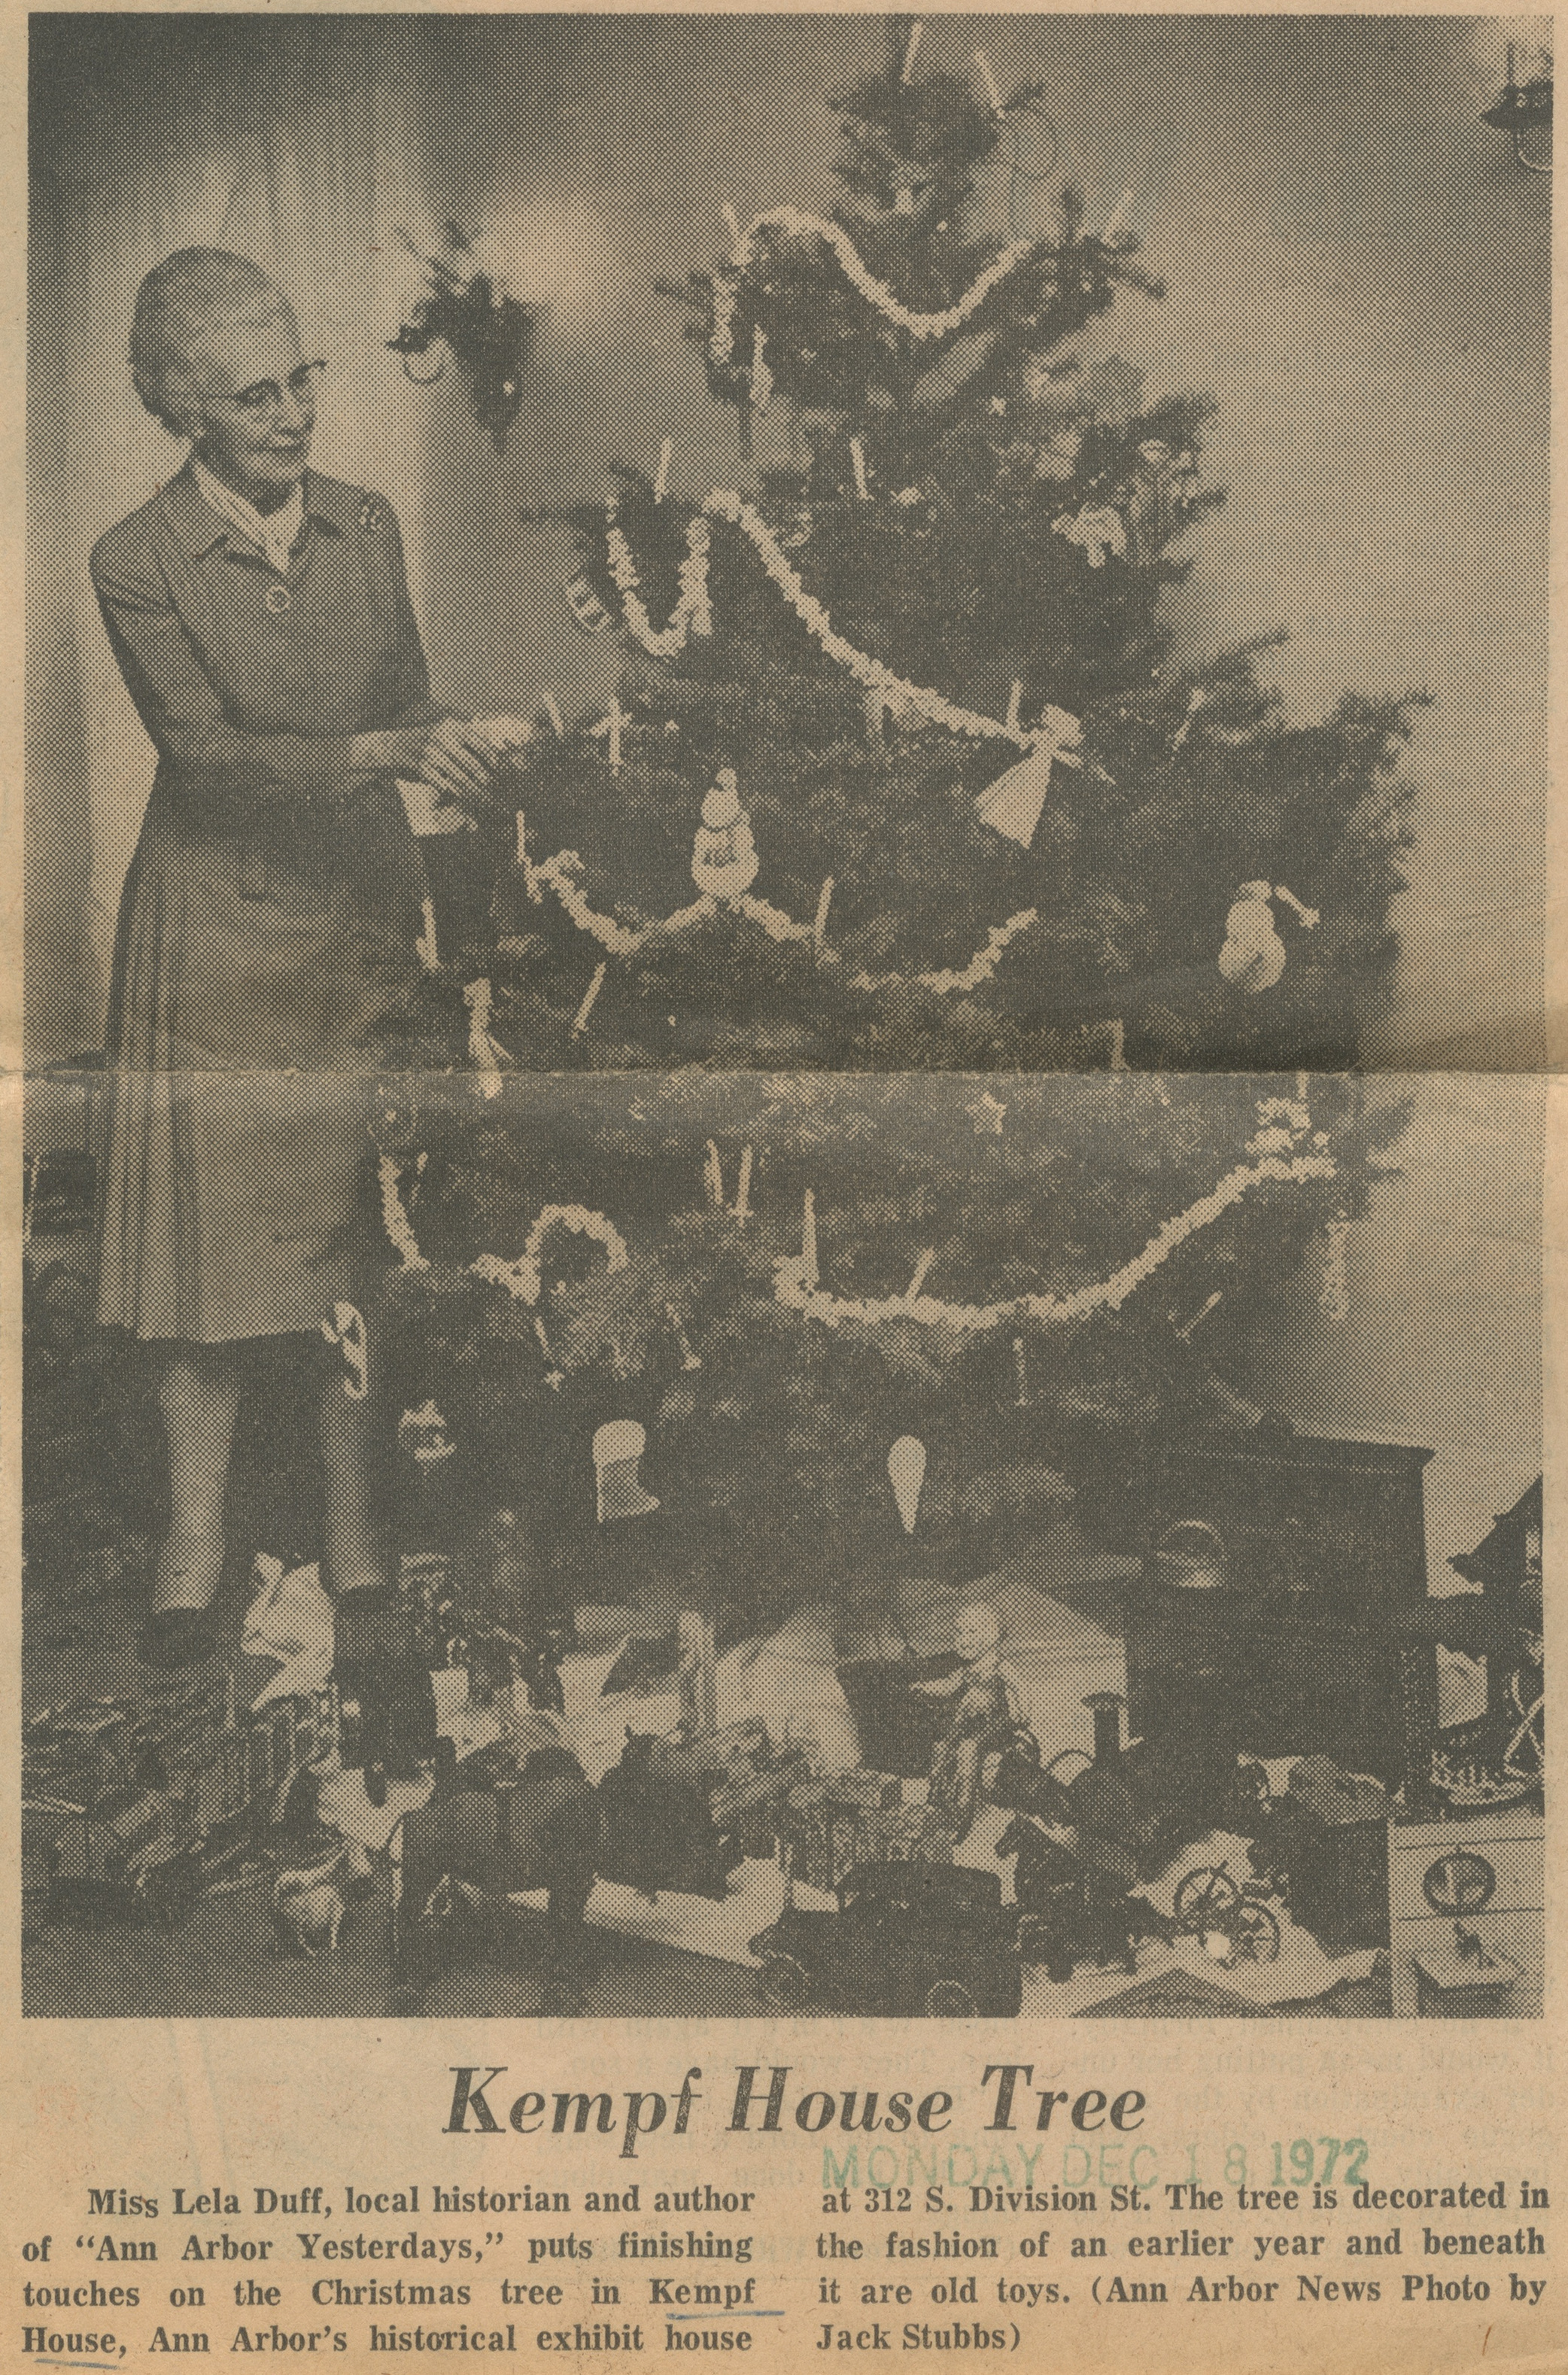 Kempf House Tree image